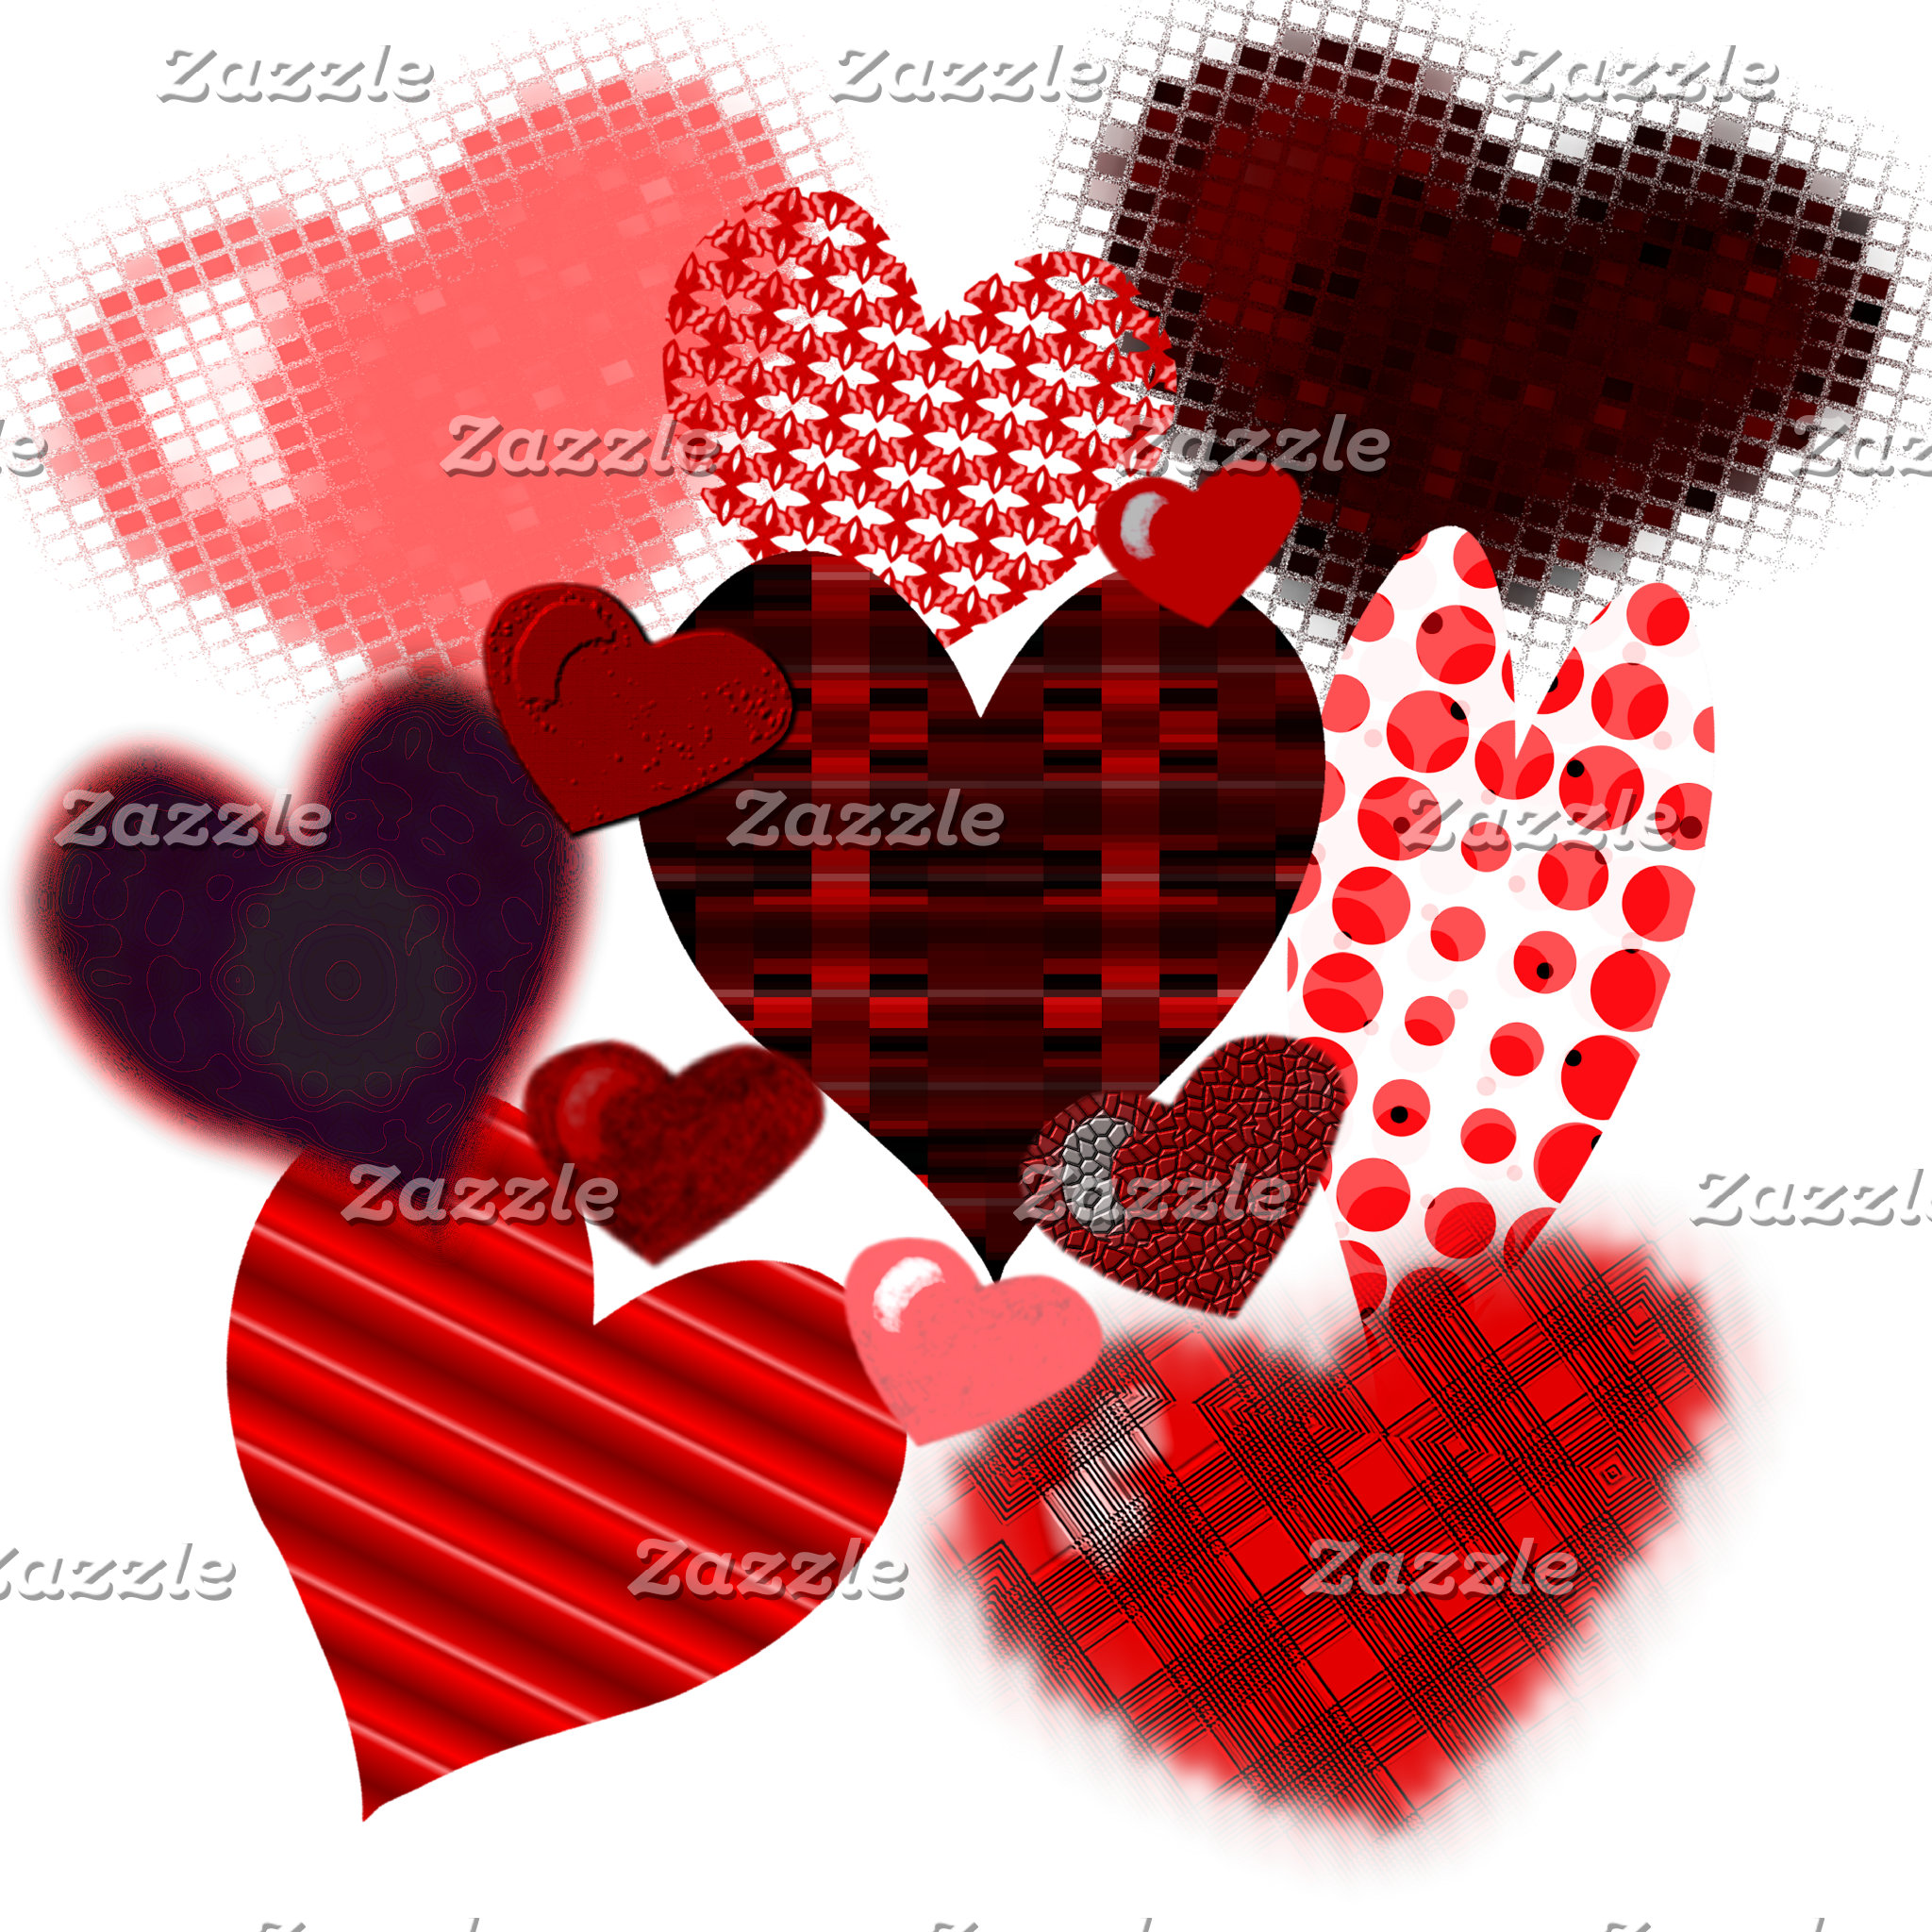 Textured Heart Collage